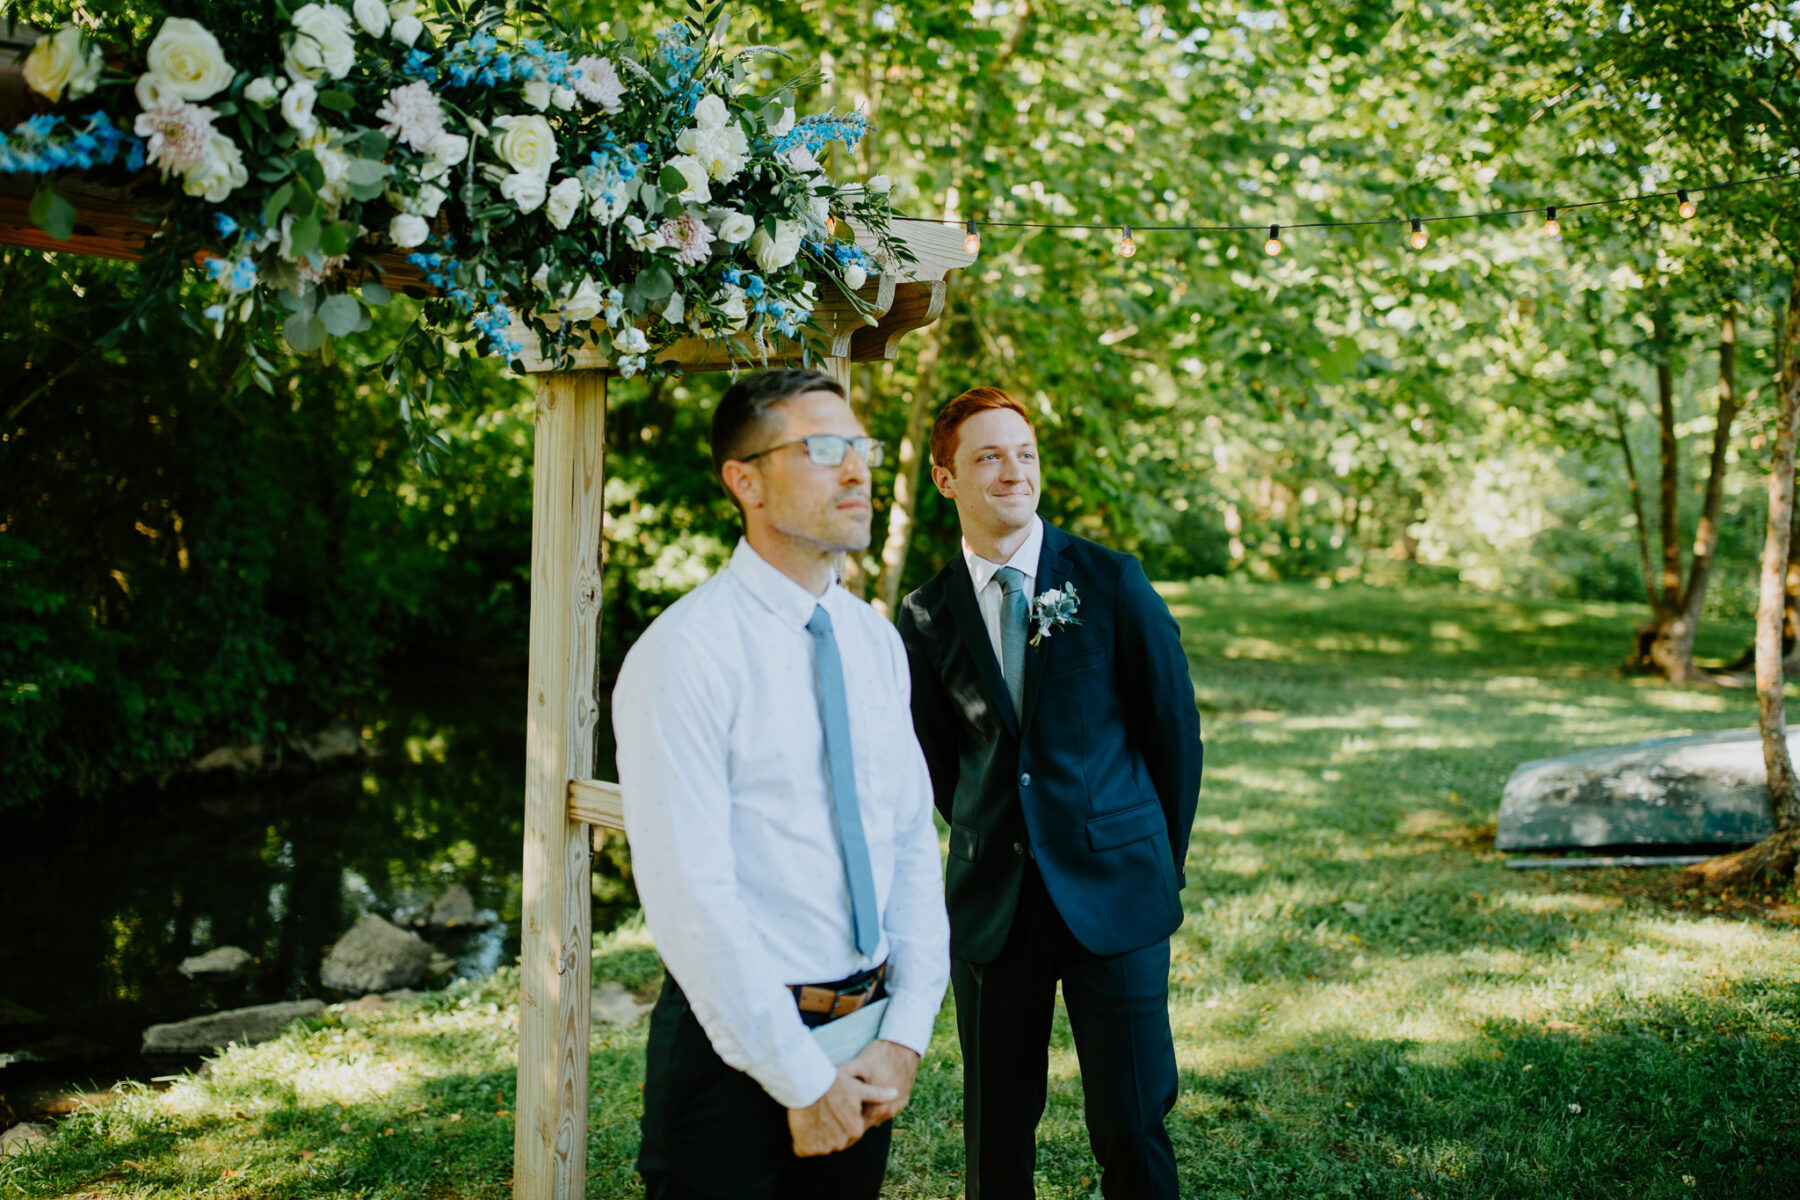 First look during wedding ceremony: Vibrant Summer Wedding at Sinking Creek Farm featured on Nashville Bride Guide